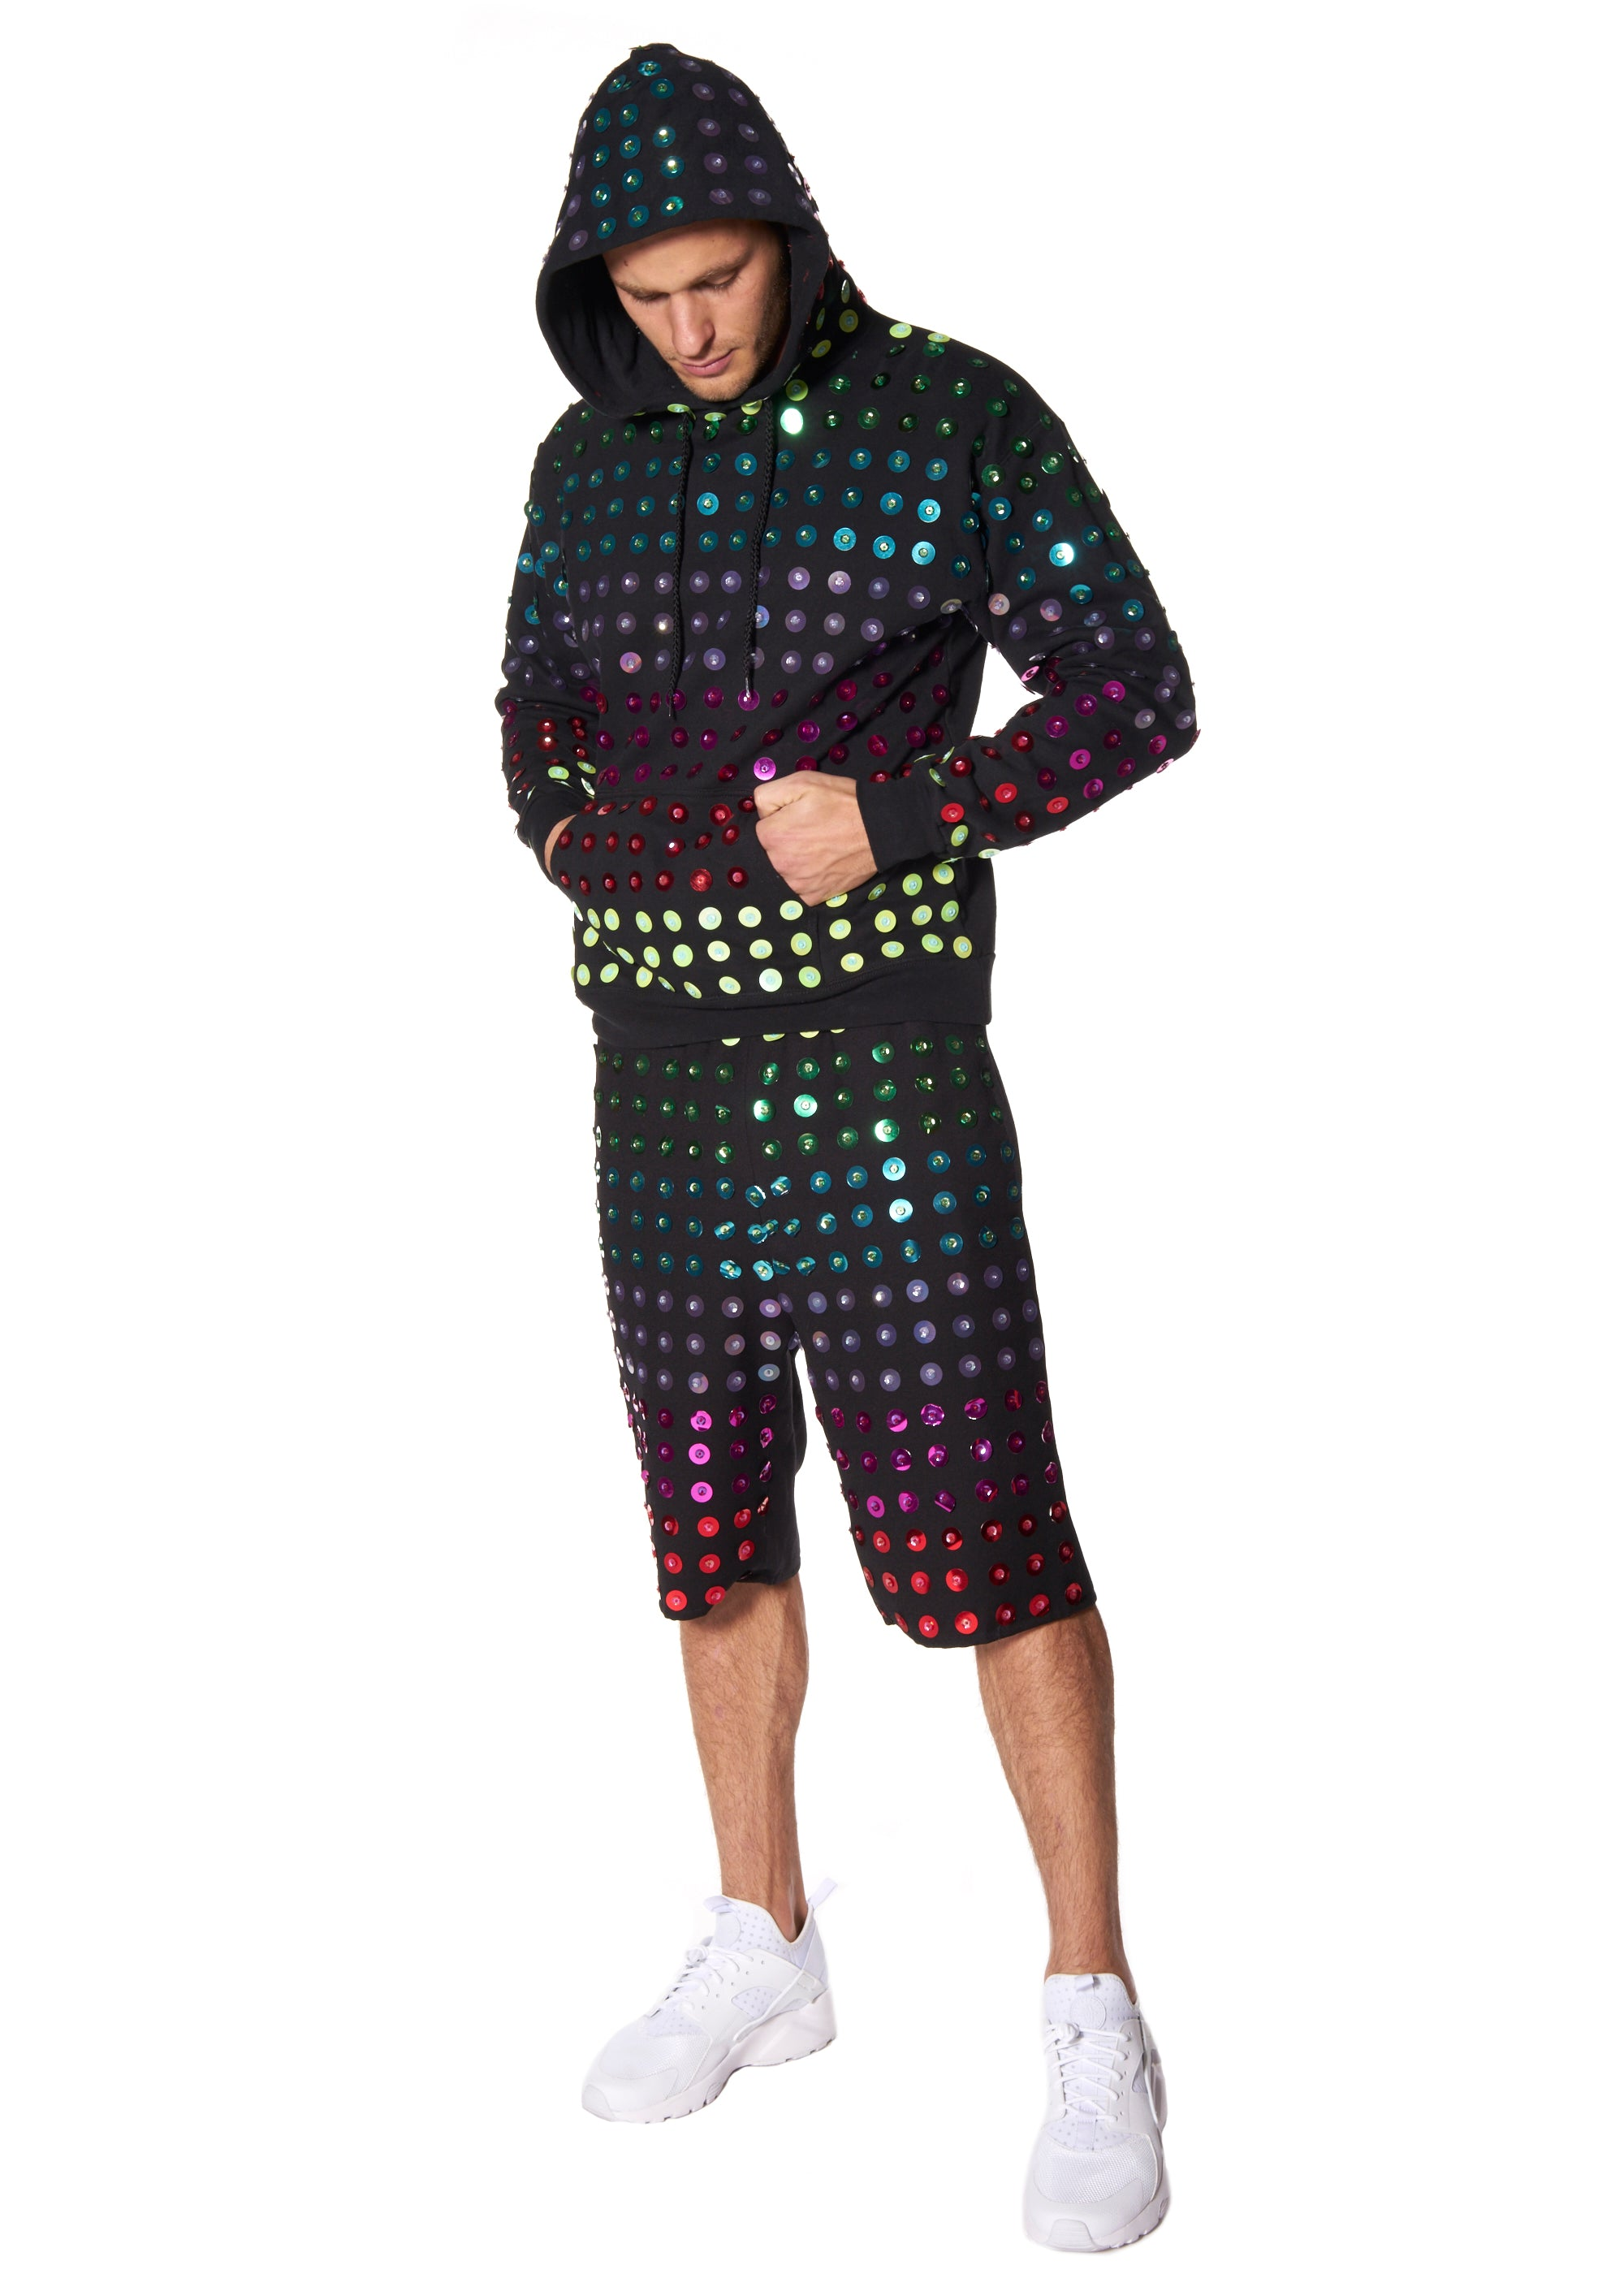 RAINBOW PAILLETTES HOODED SWEATSHIRT - Men's Tops - Libertine